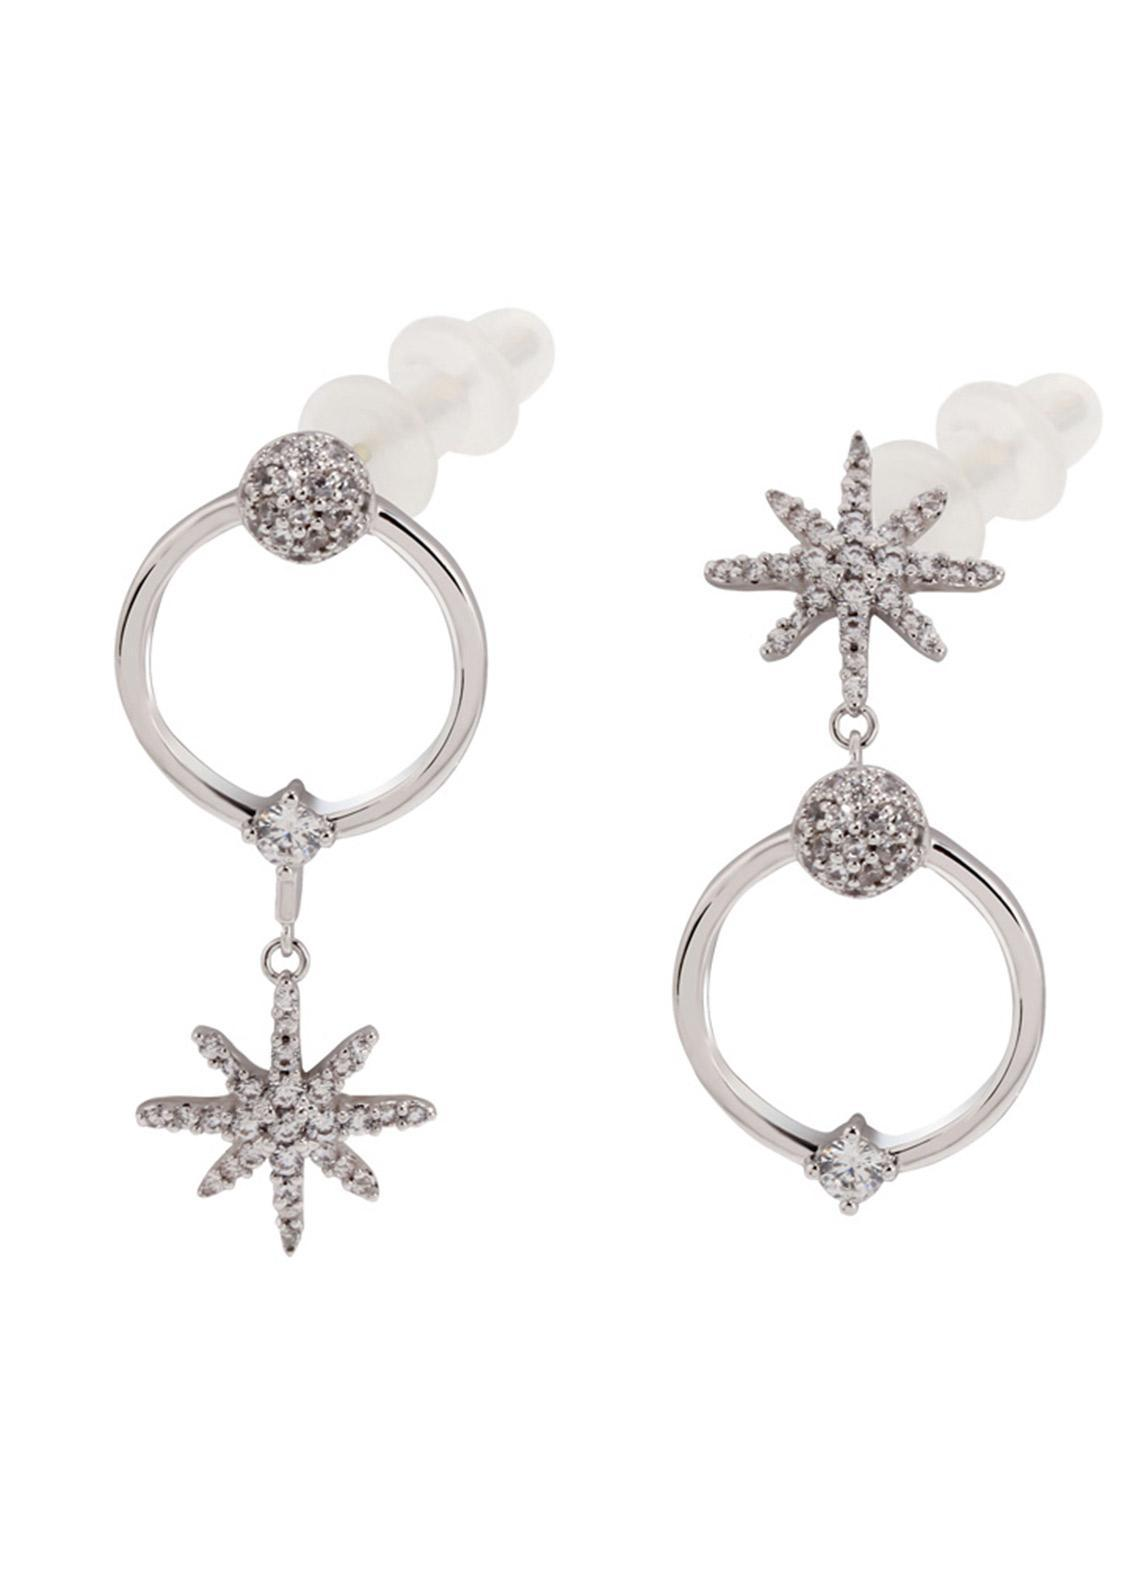 Anna Grace London by Silk Avenue Silver Crystal Sparkling Fashion Earring AGE0023 - Ladies Jewellery